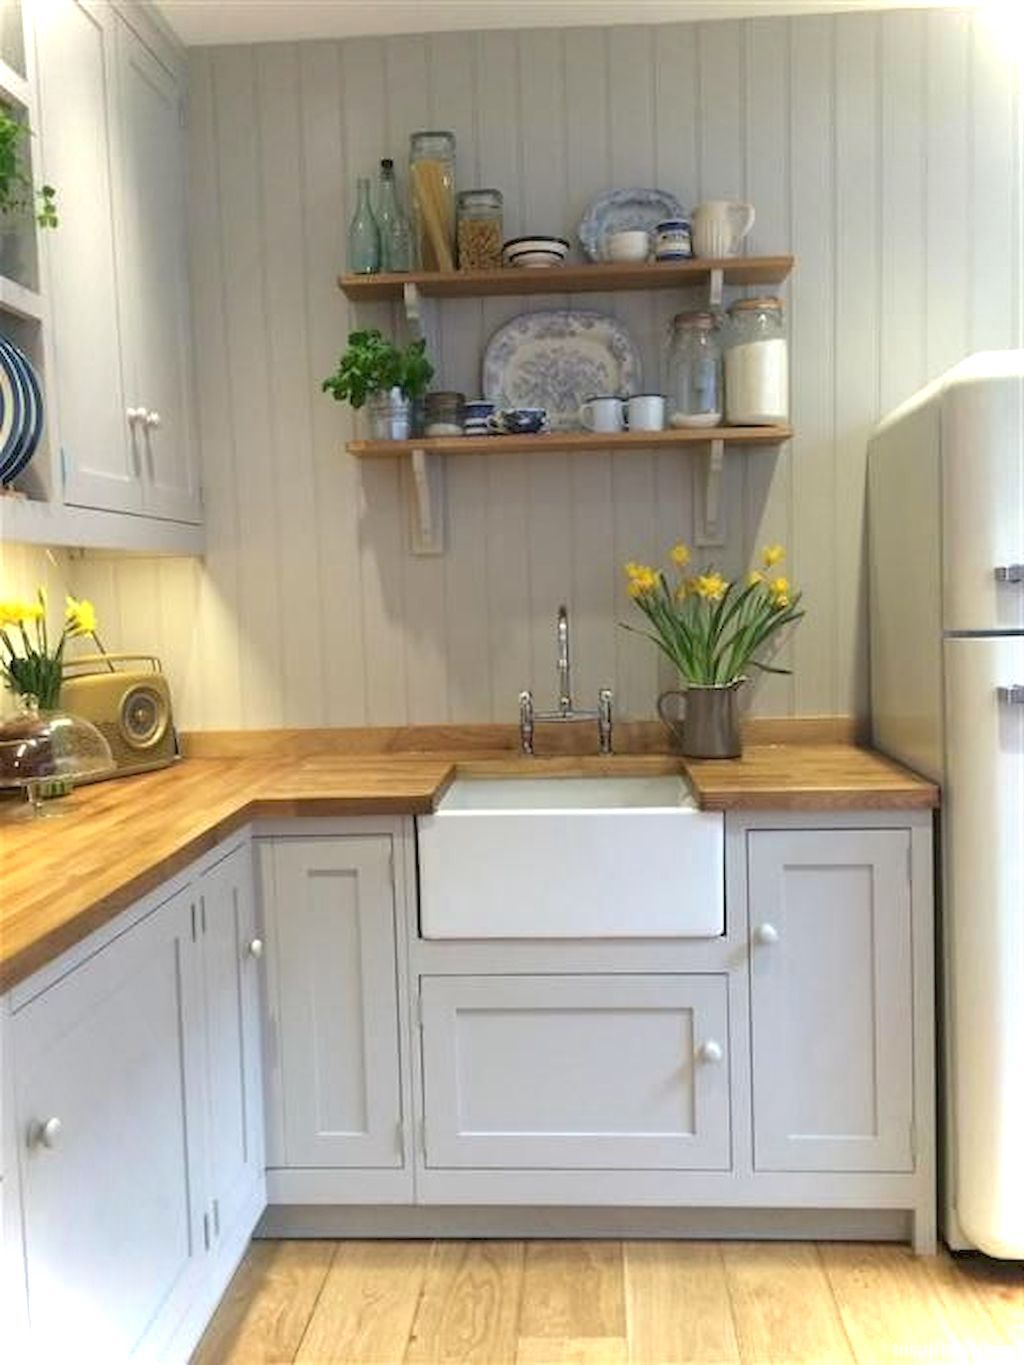 Awesome 55 Genius Small Cottage Kitchen Design Ideas Https Roomaniac Com 55 Genius Small Cottage Kitch Small Cottage Kitchen Kitchen Remodel Cottage Kitchens